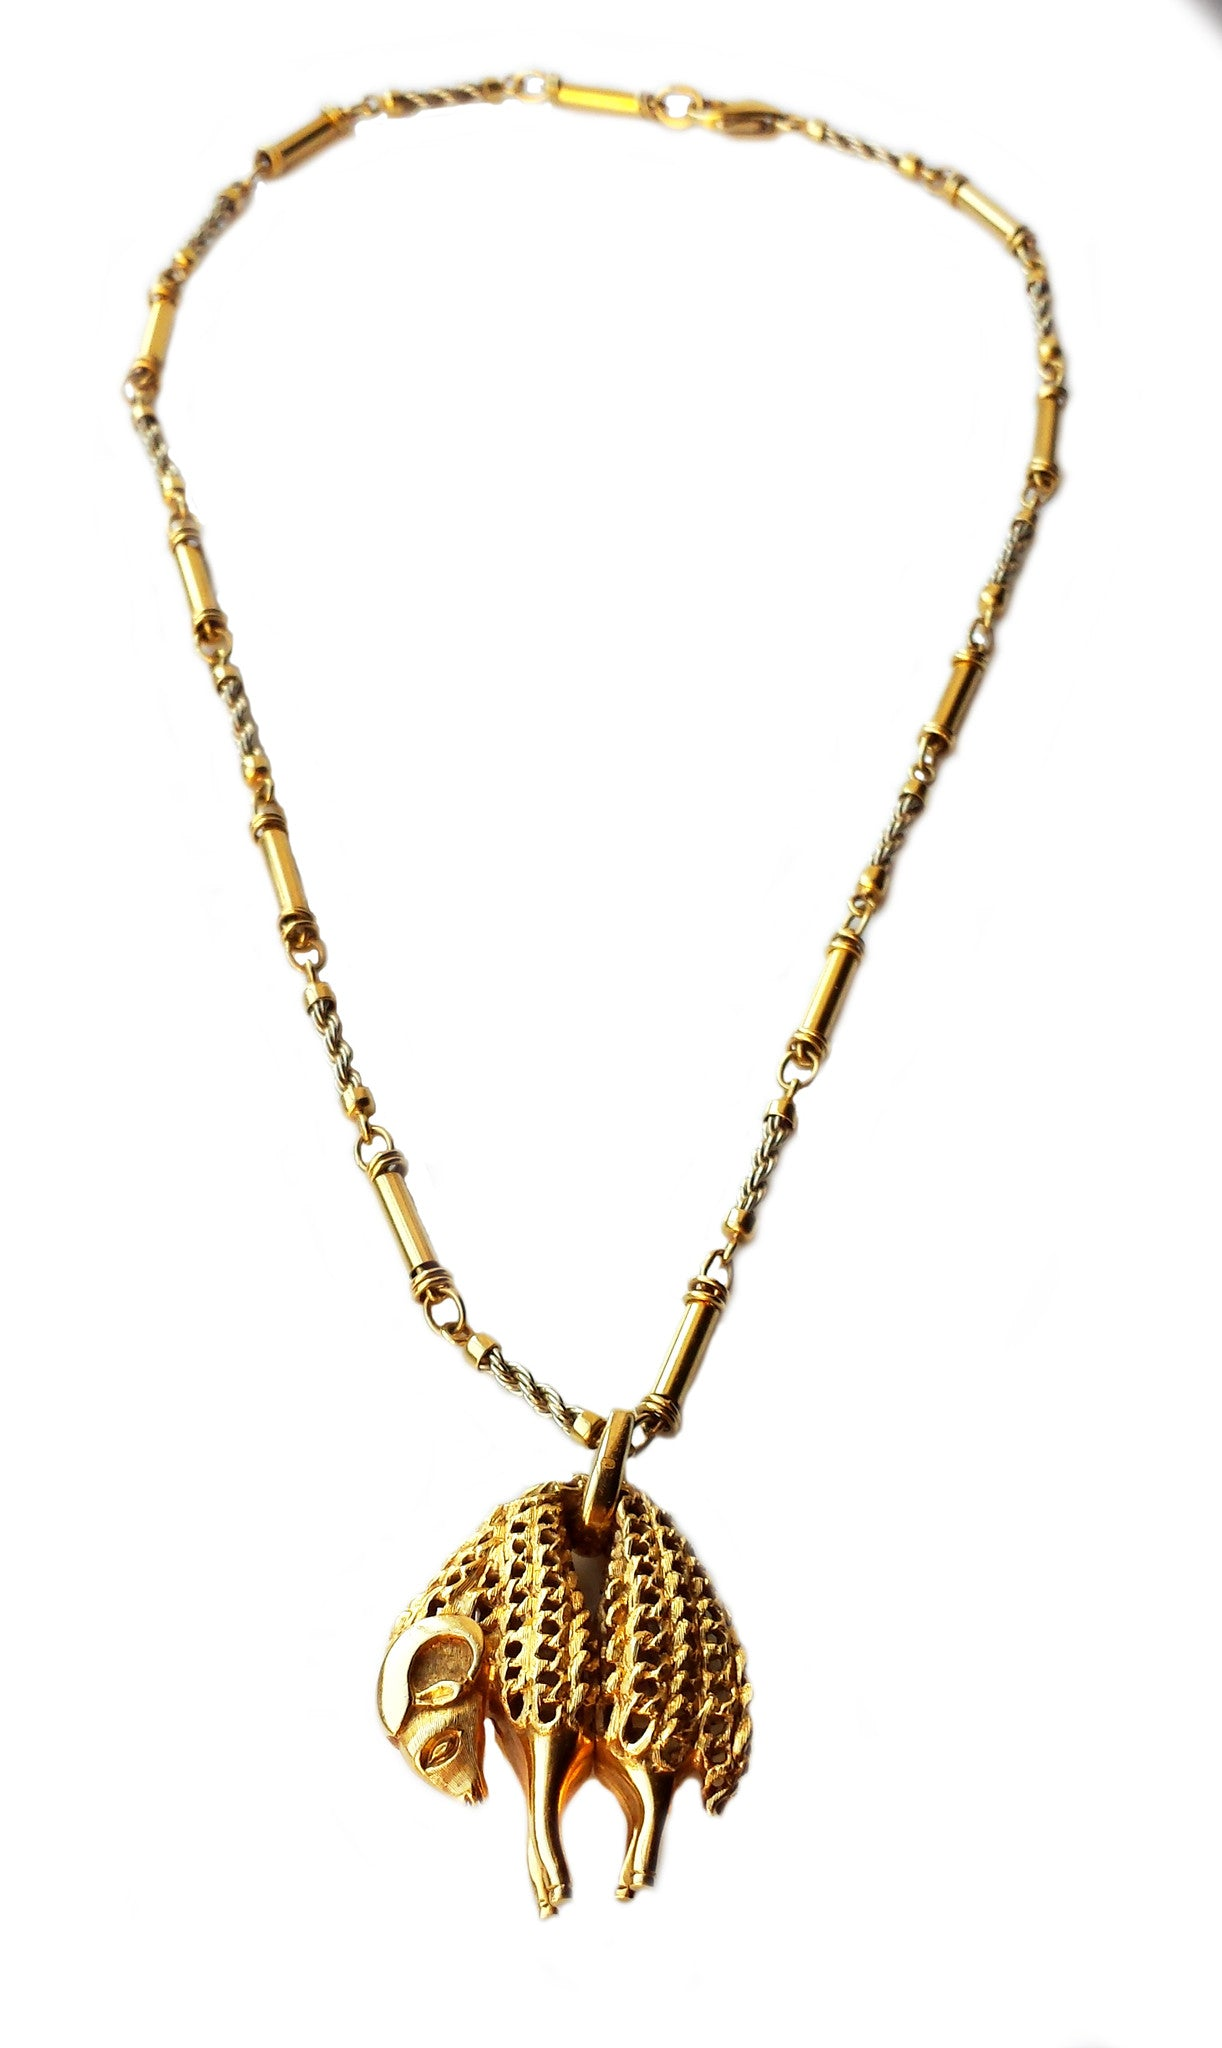 Vintage Cartier Toison D'Or Golden Fleece 18k Yellow Gold Pendant Necklace 18in